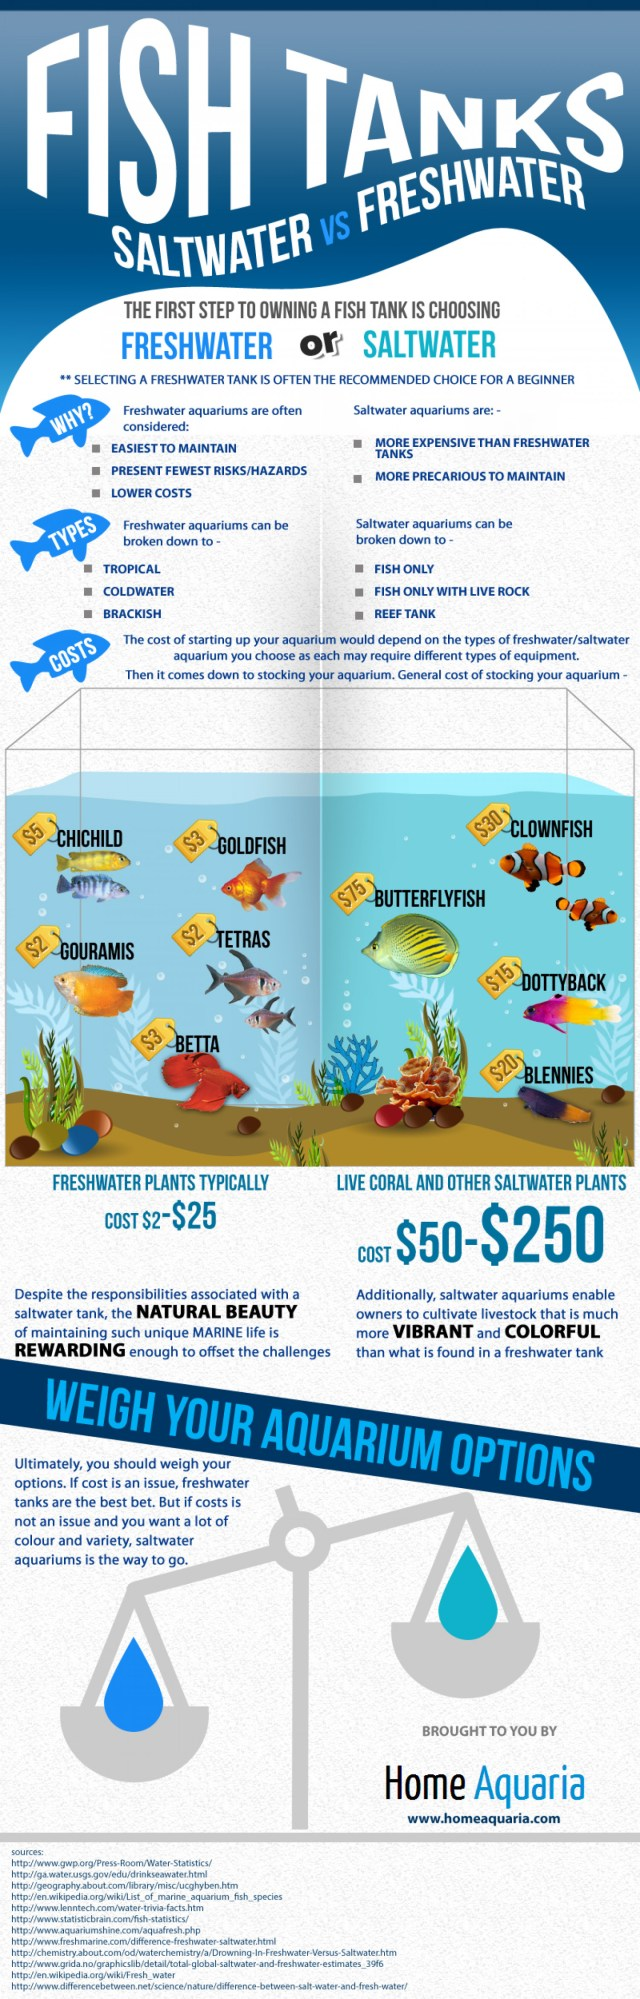 FISH TANKS Saltwater VS Freshwater Infographic